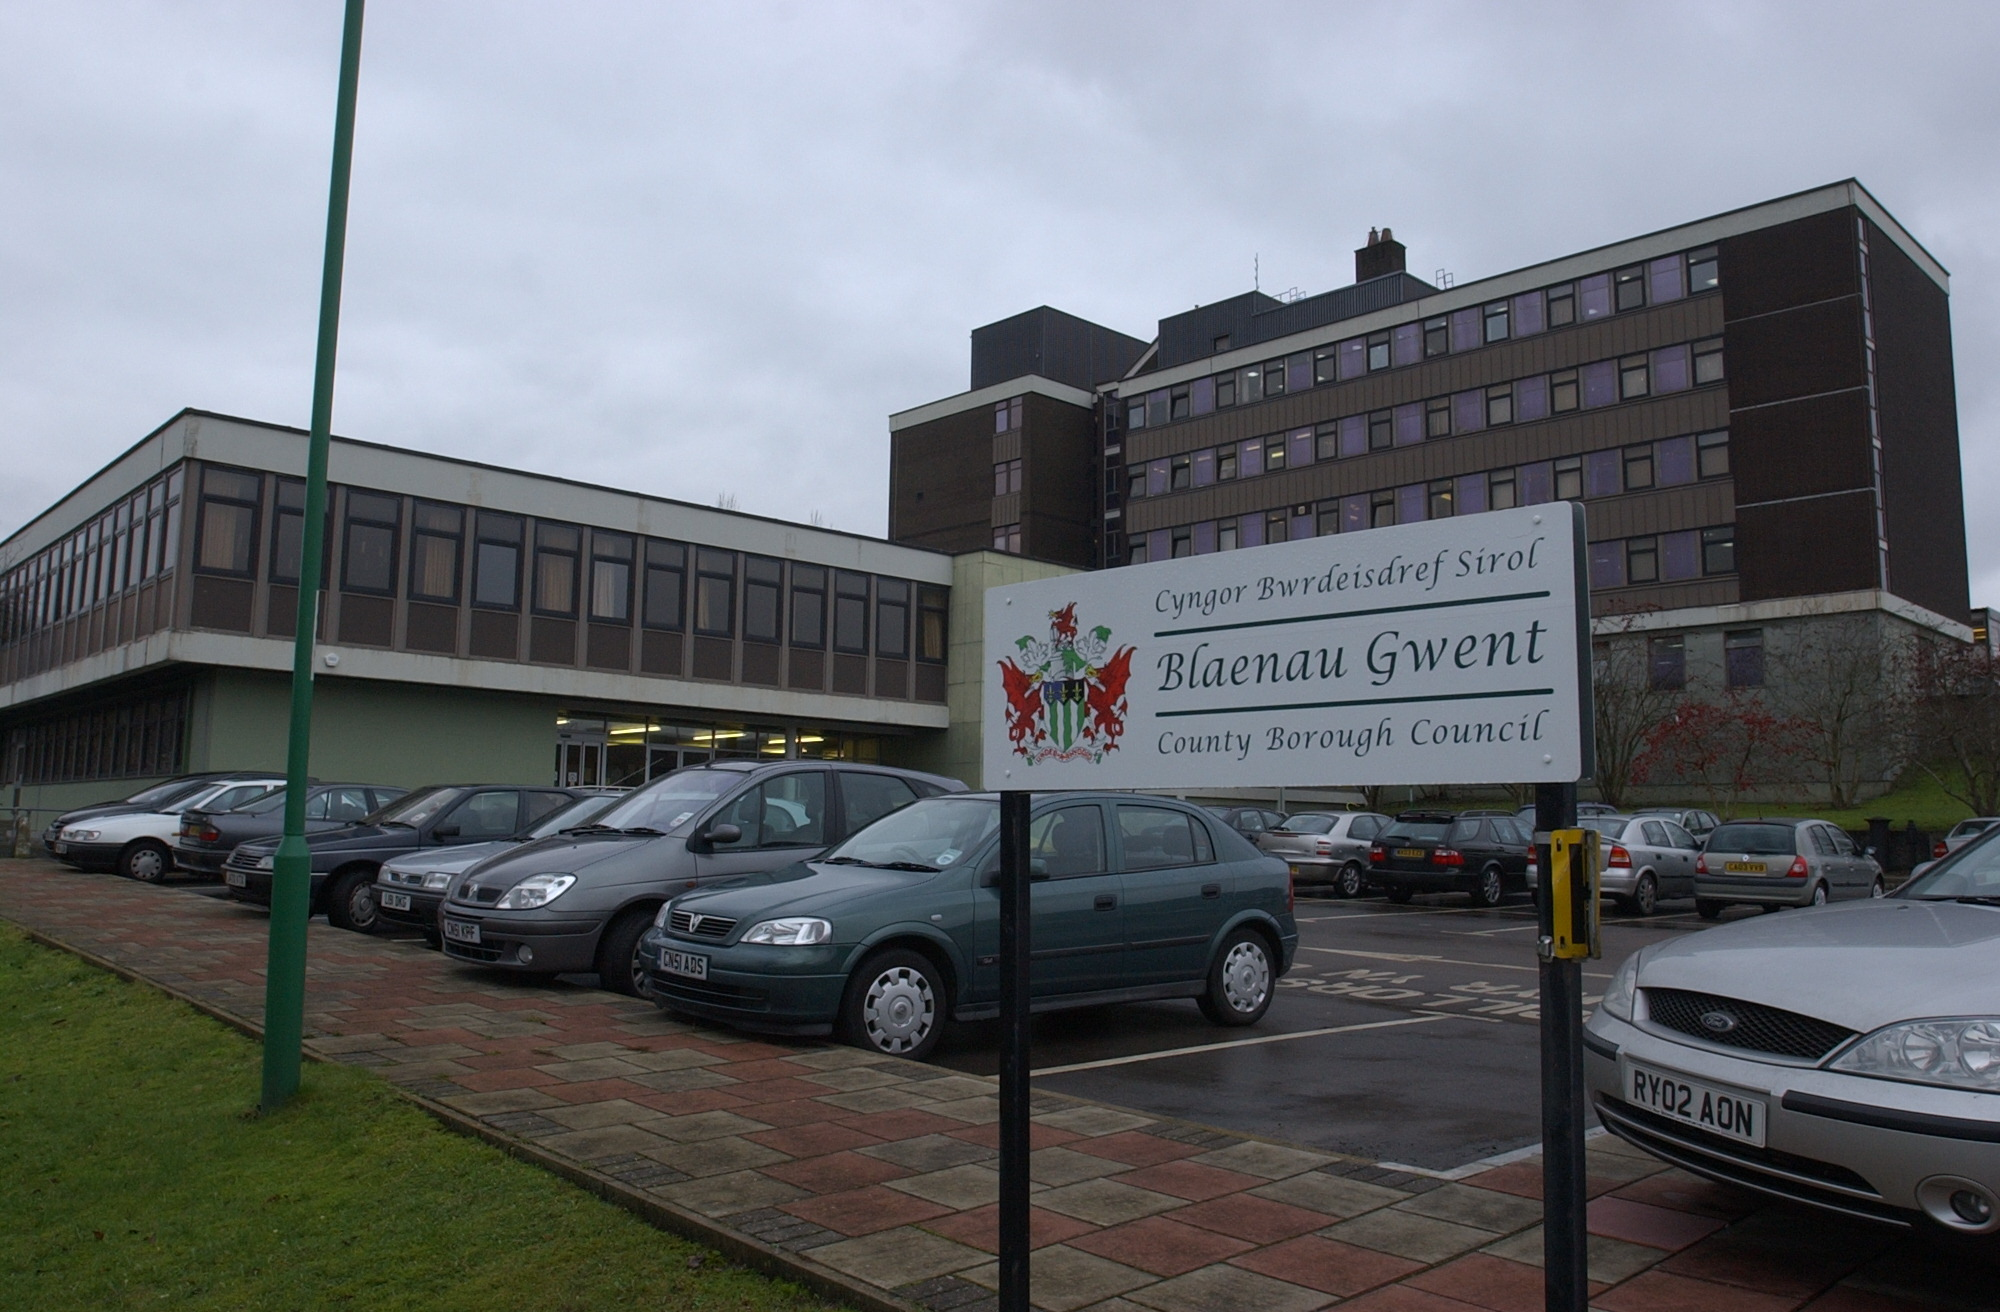 Blaenau Gwent council will launch a consultation into its travel policies